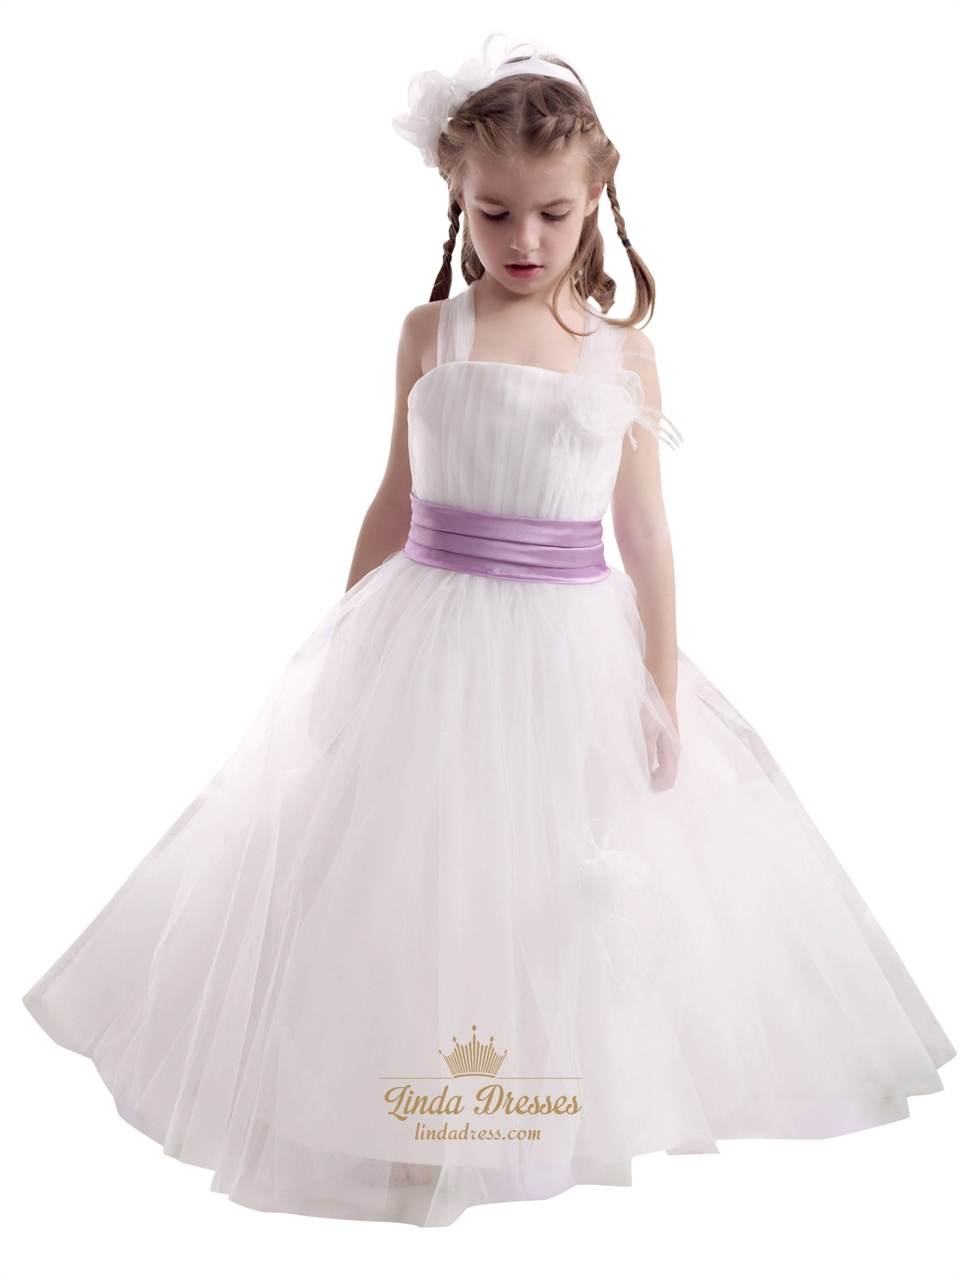 White tulle purple sash flower girl dress with flowers and feathers white tulle purple sash flower girl dress with flowers and feathers mightylinksfo